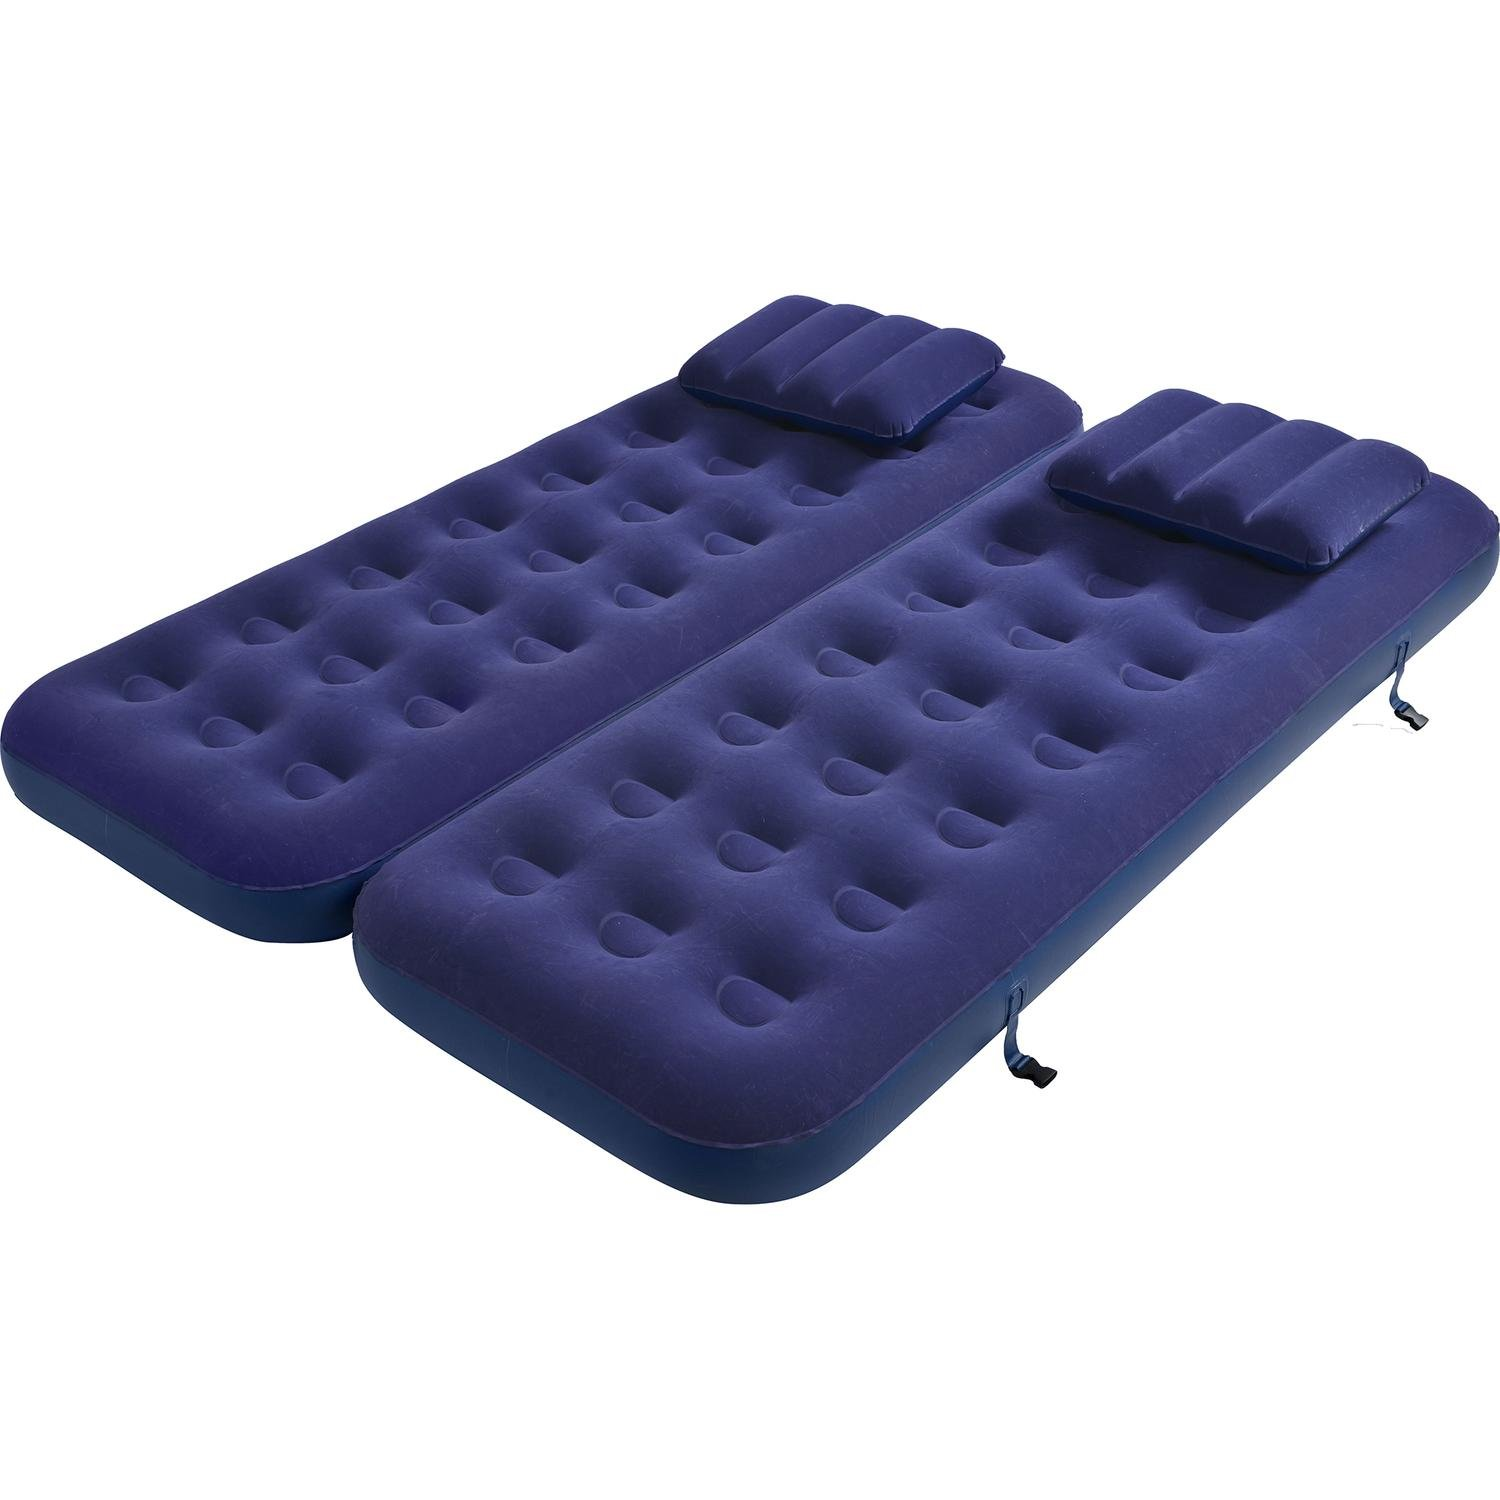 By PoolCentral 75'' Navy Blue 3 in 1 Inflatable Flocked Air Mattress with Pillows